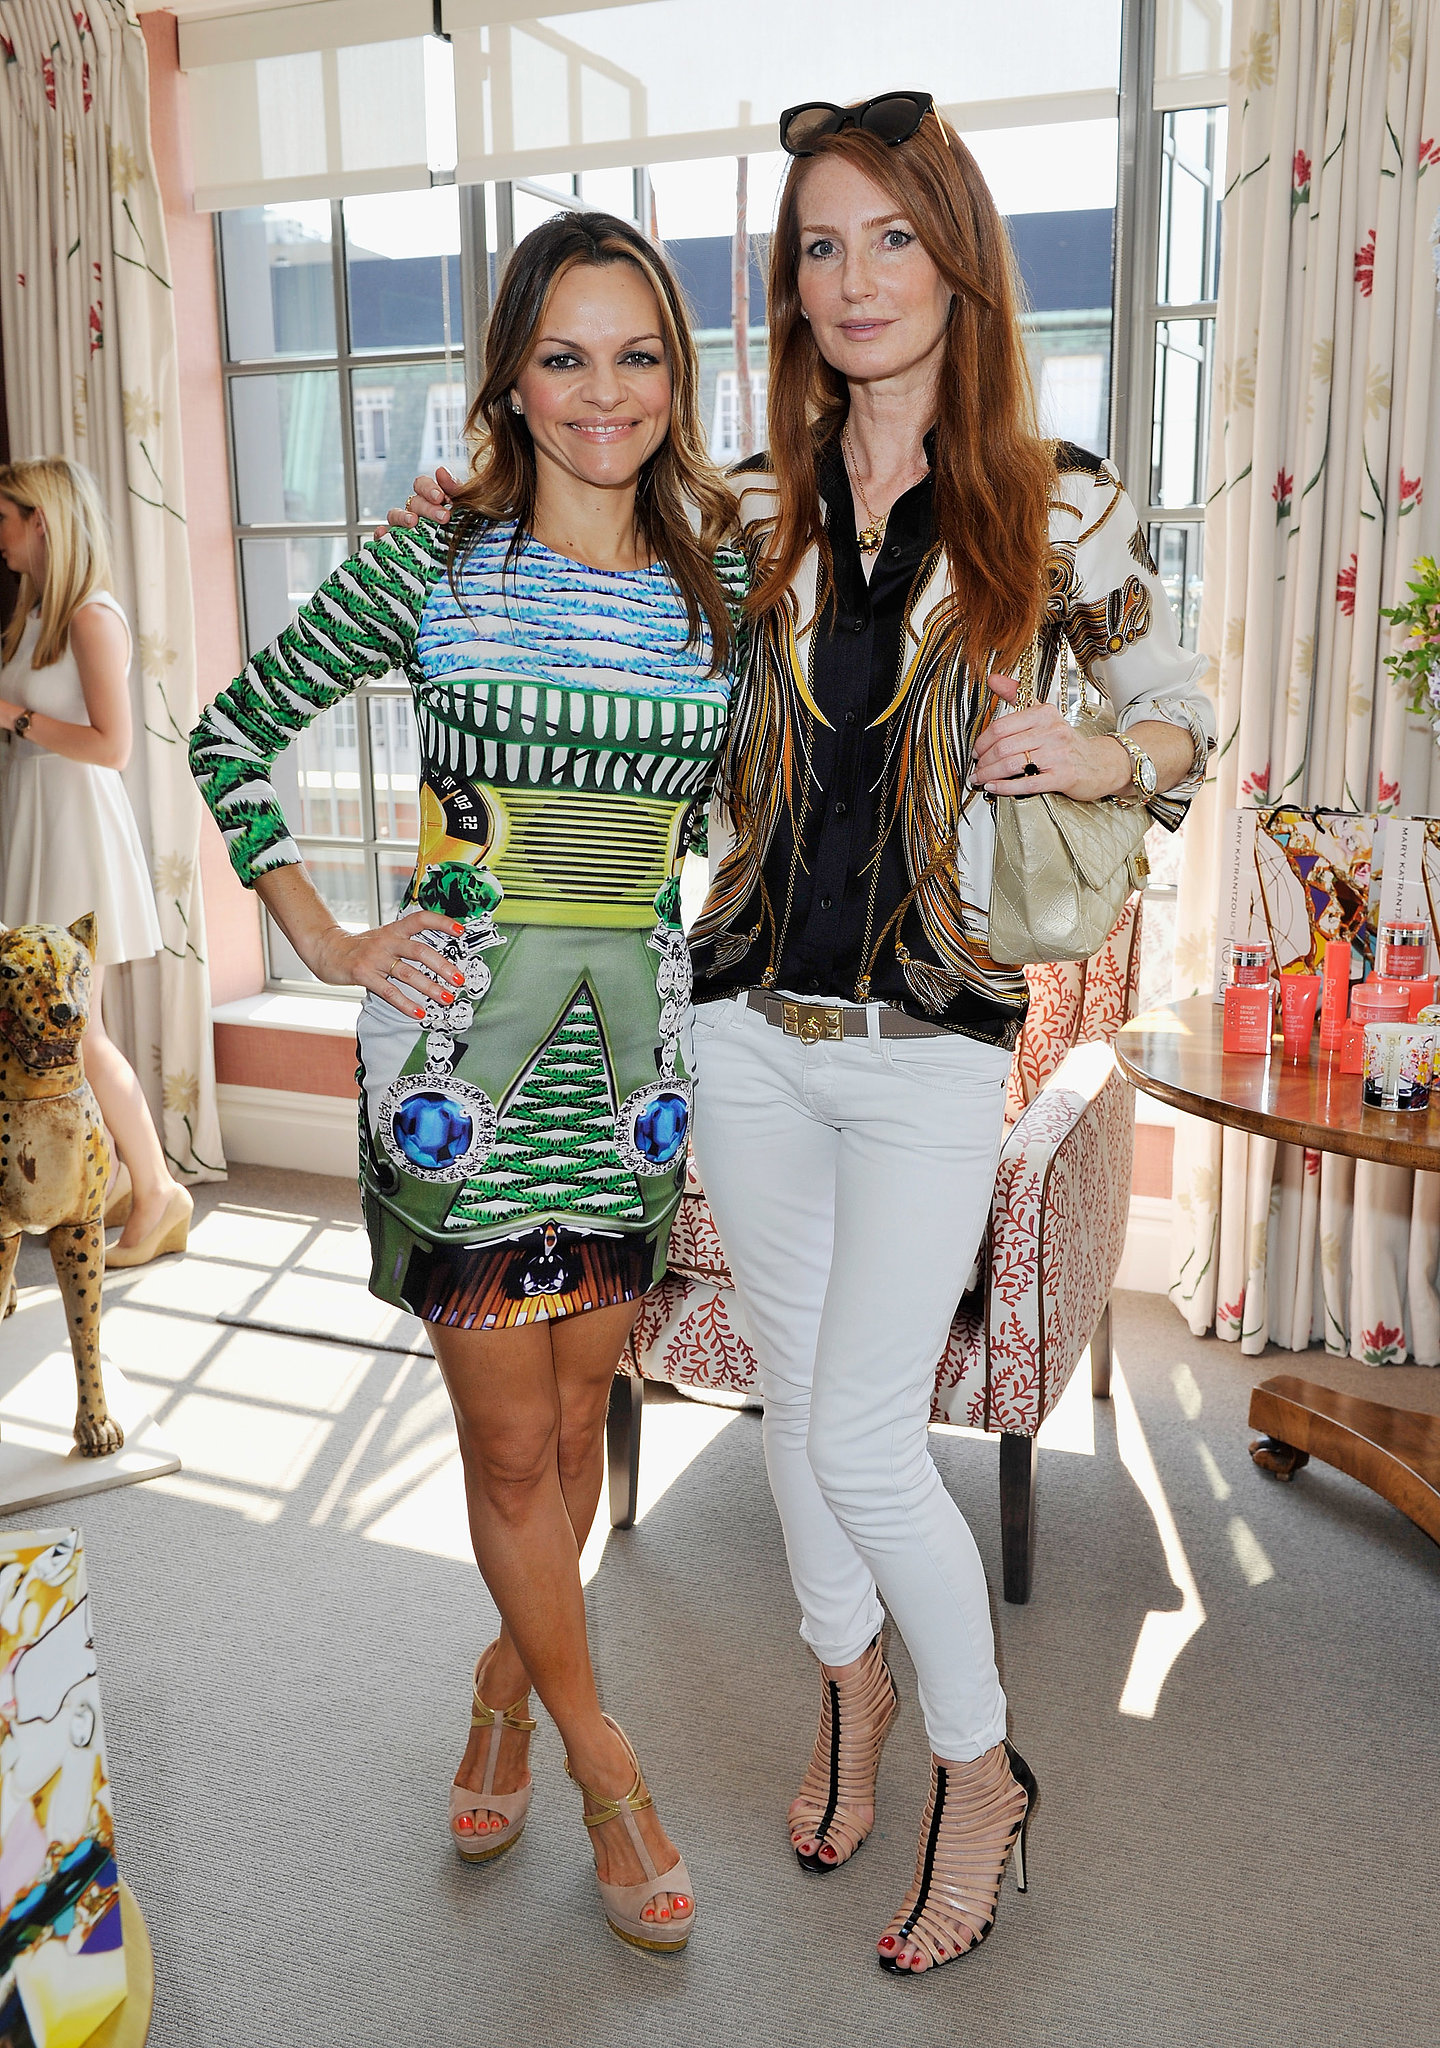 Maria Hatzistefanis and Angela Dunn Radcliffe joined Mary Katrantzou for tea at London's Soho Hotel.